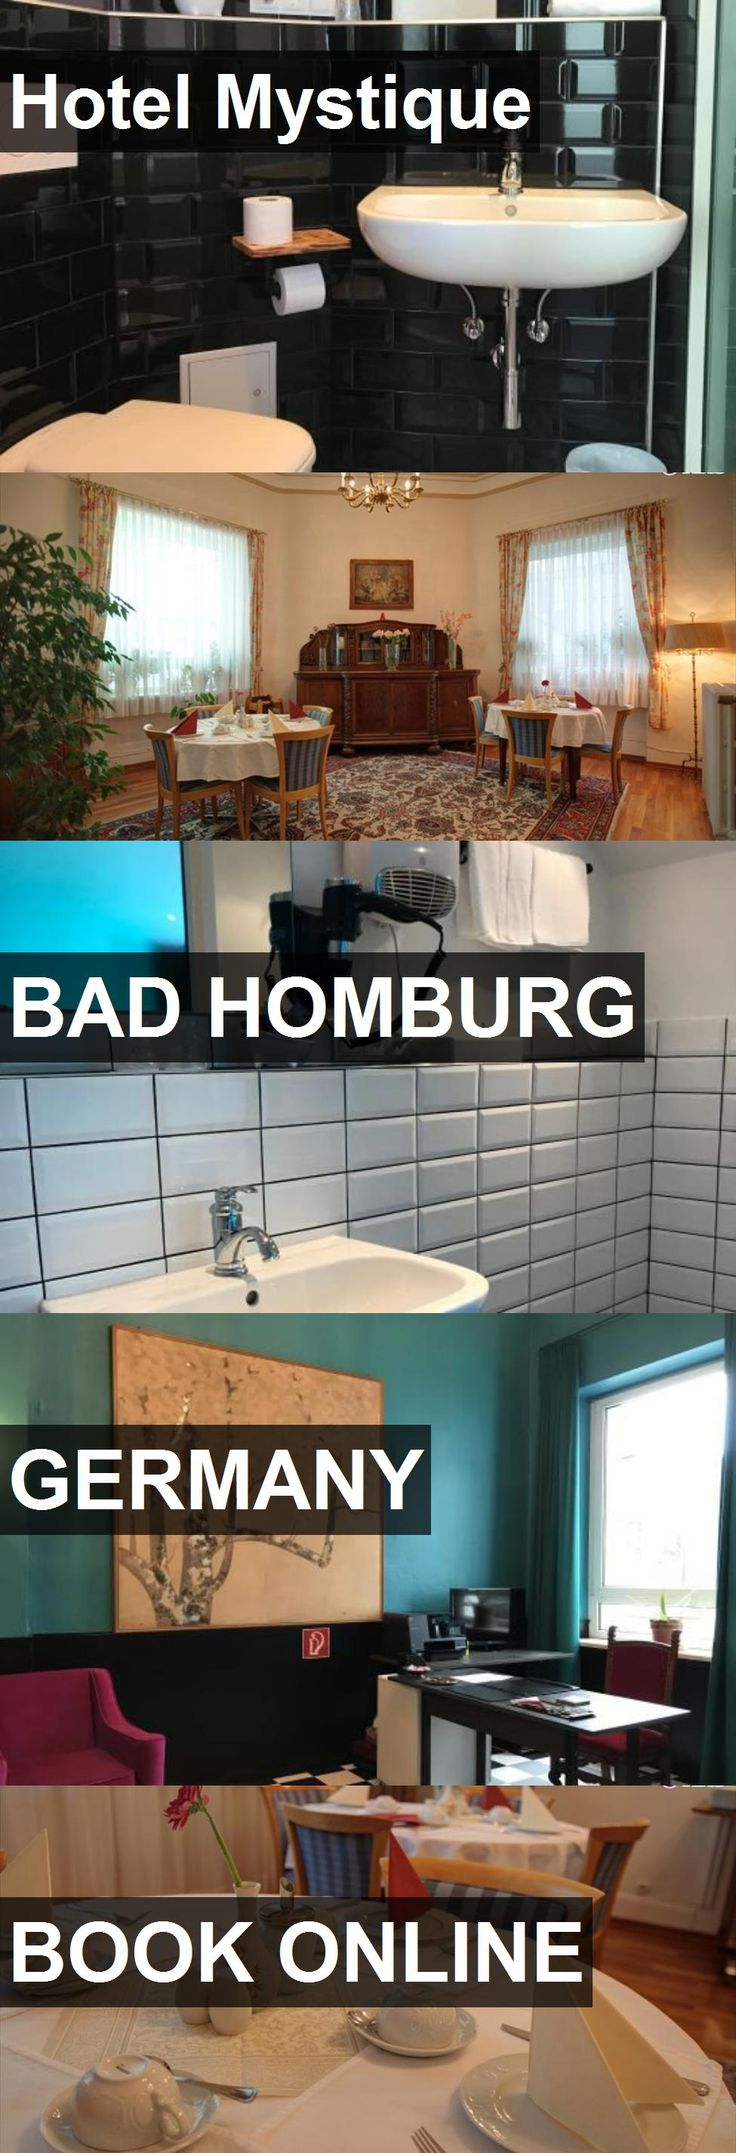 Hotel Mystique in Bad Homburg, Germany. For more information, photos, reviews and best prices please follow the link. #Germany #BadHomburg #travel #vacation #hotel